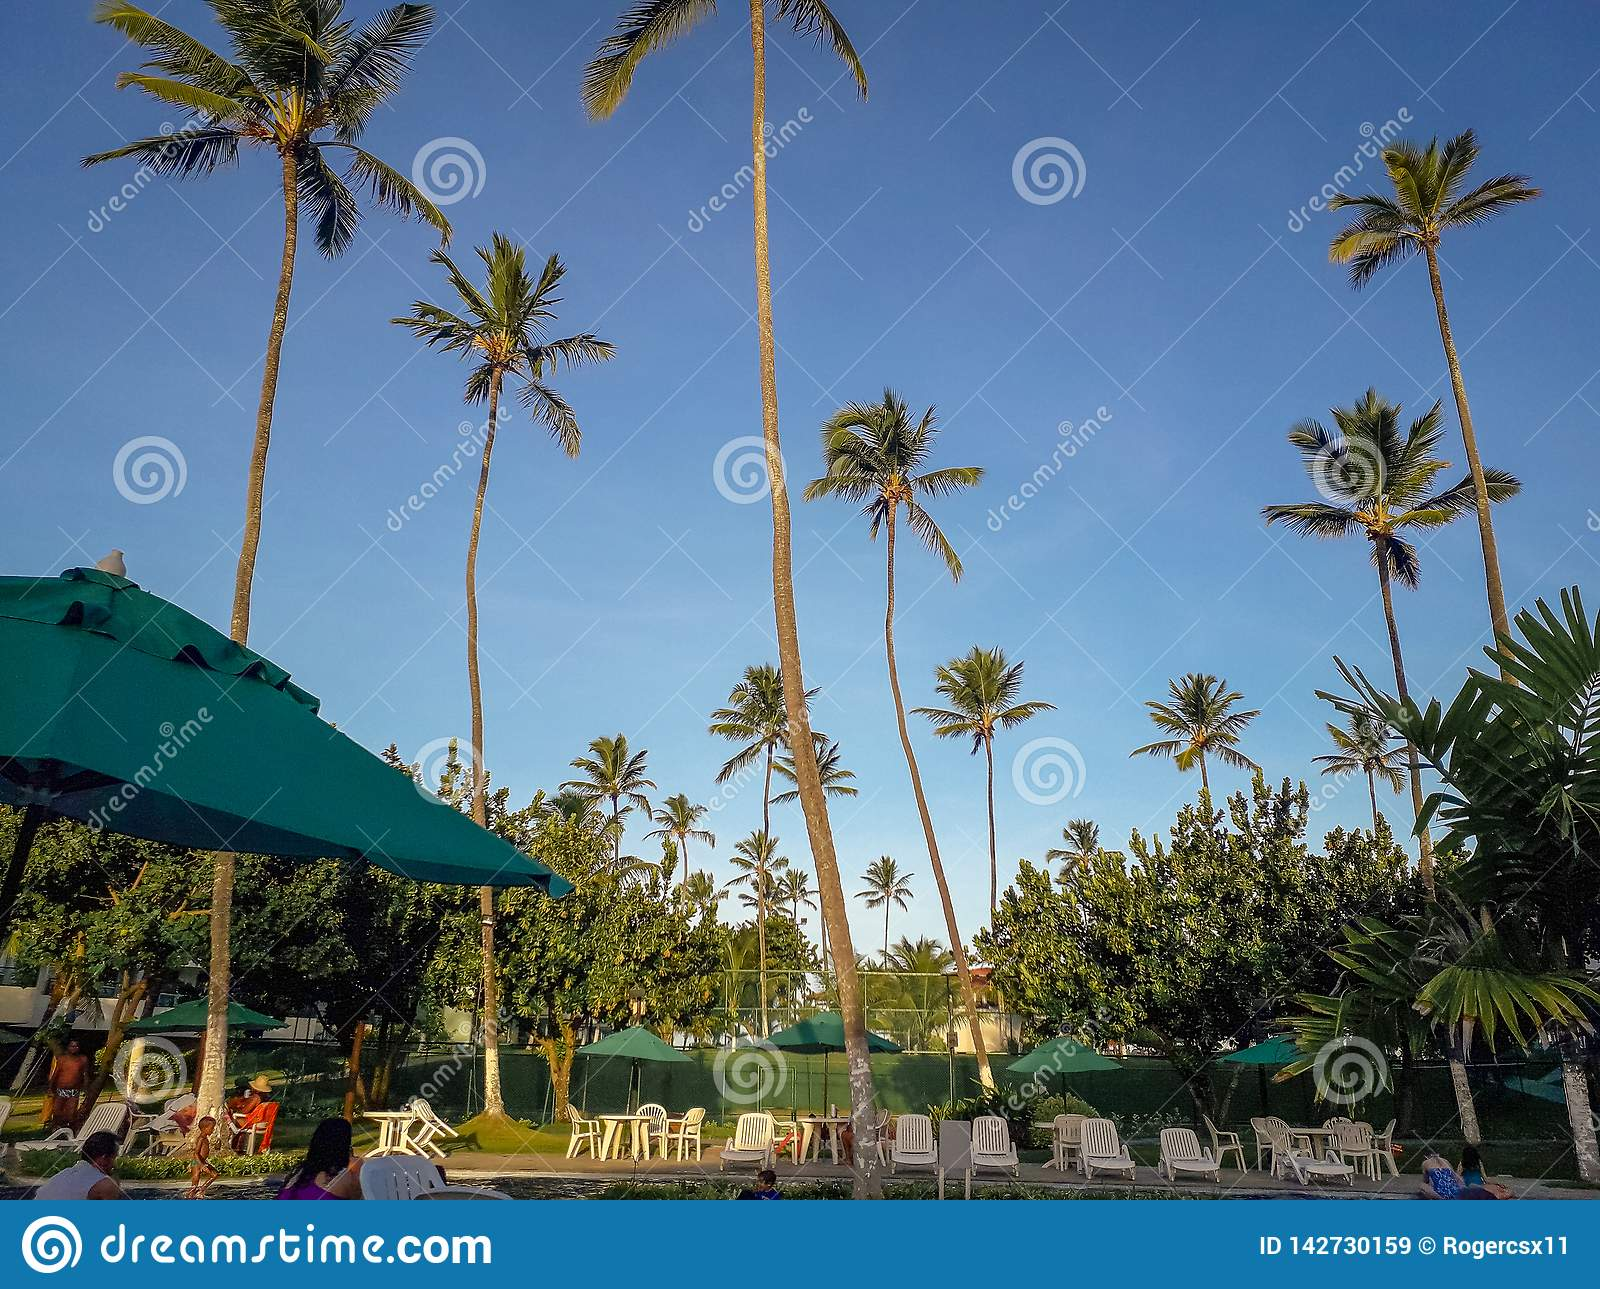 Palms and trees in Flat Resort of Brazil